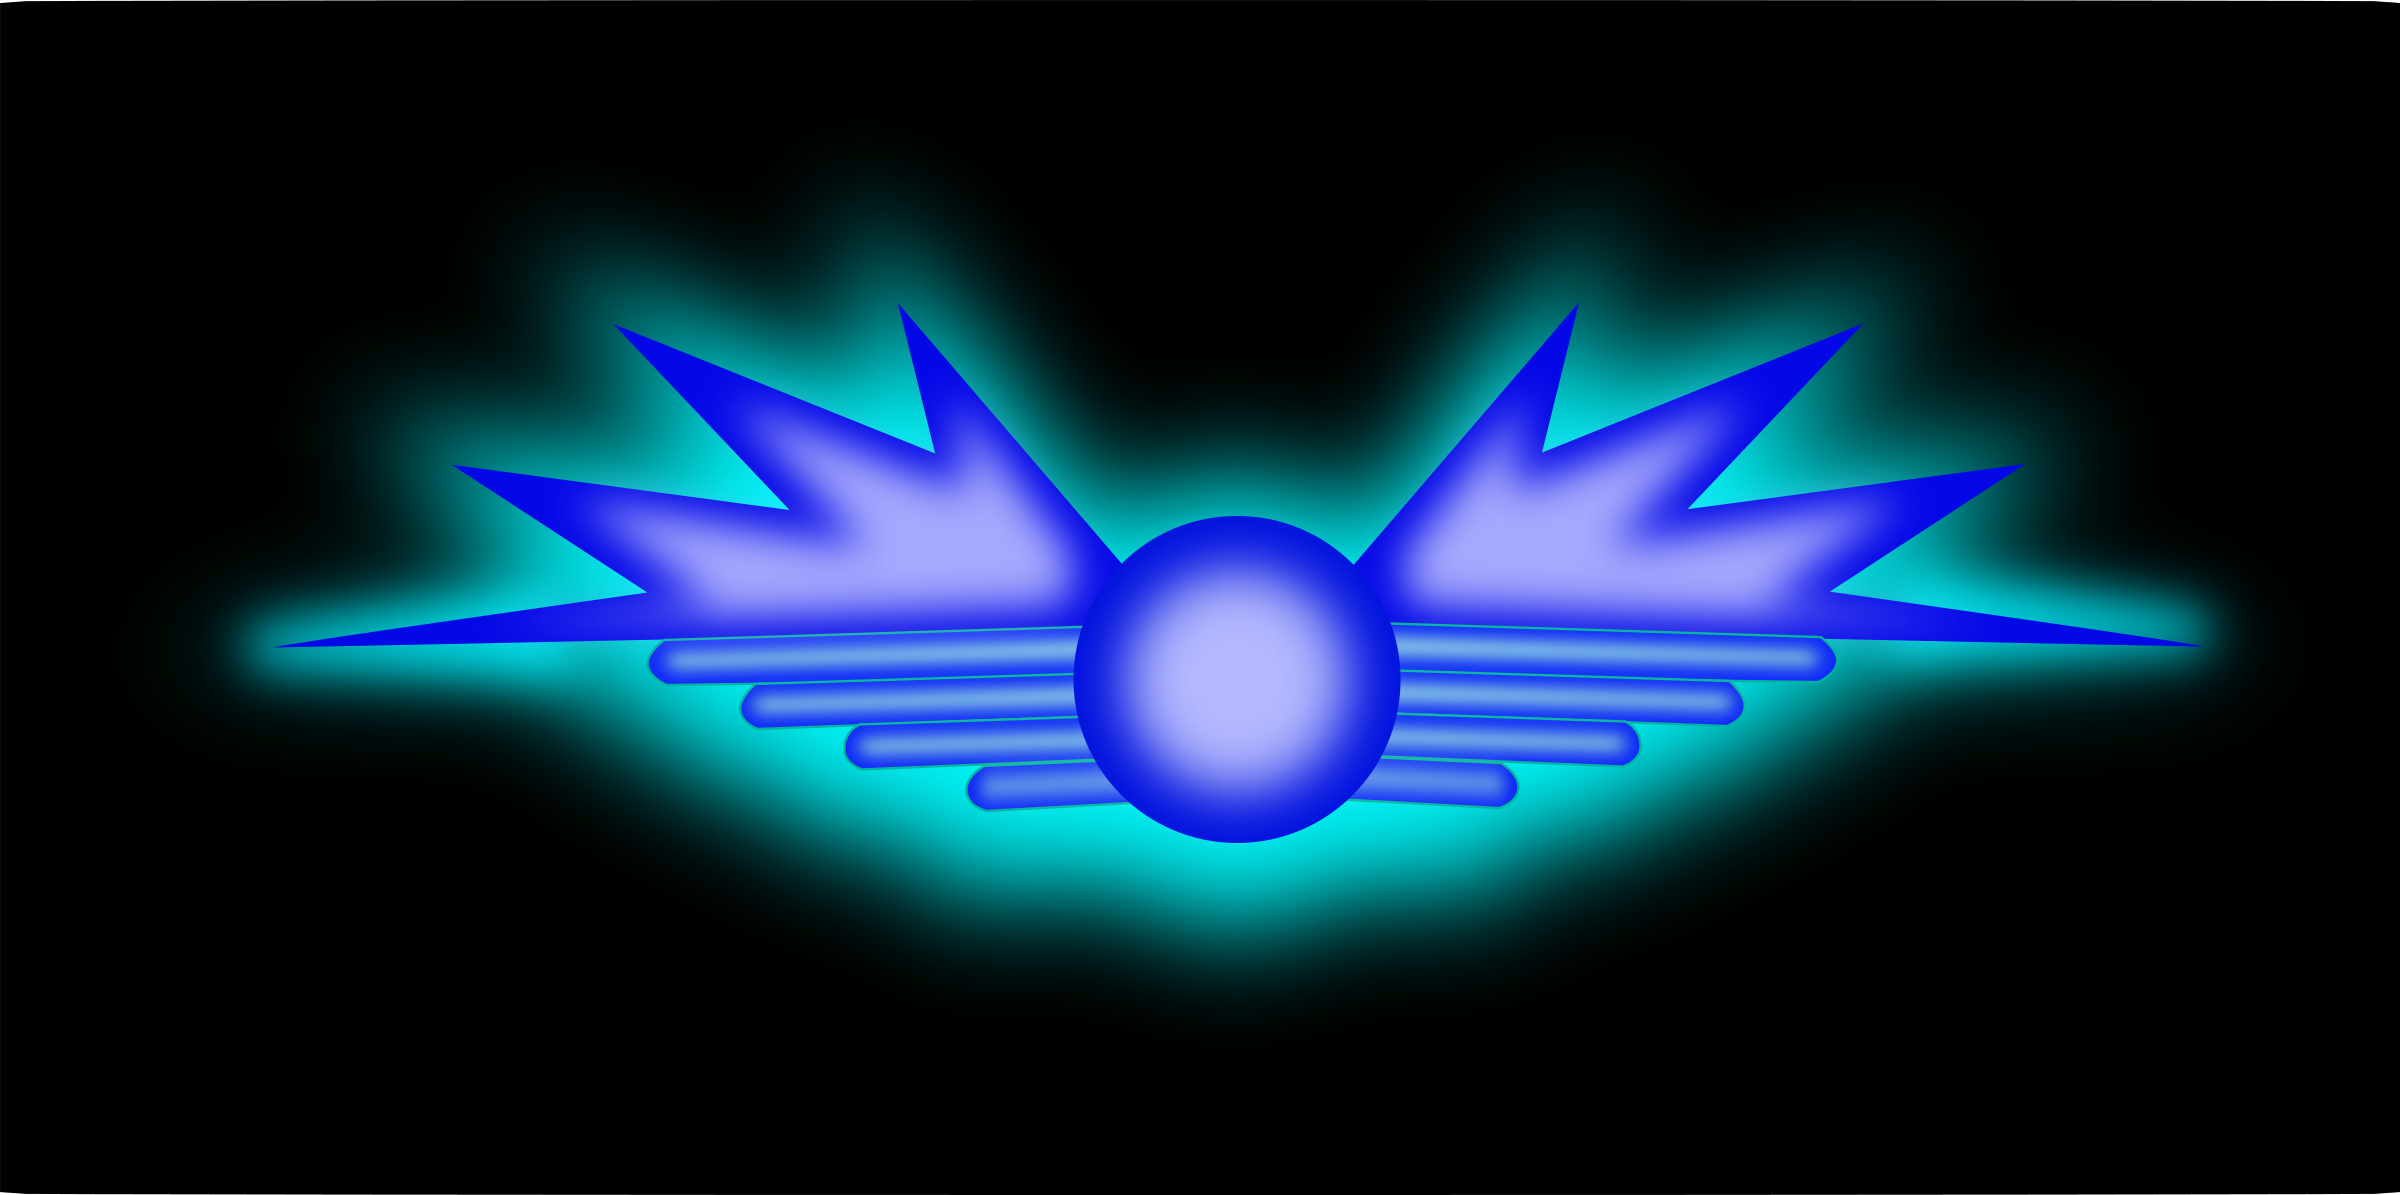 Glowing Wing Symbol by mystica